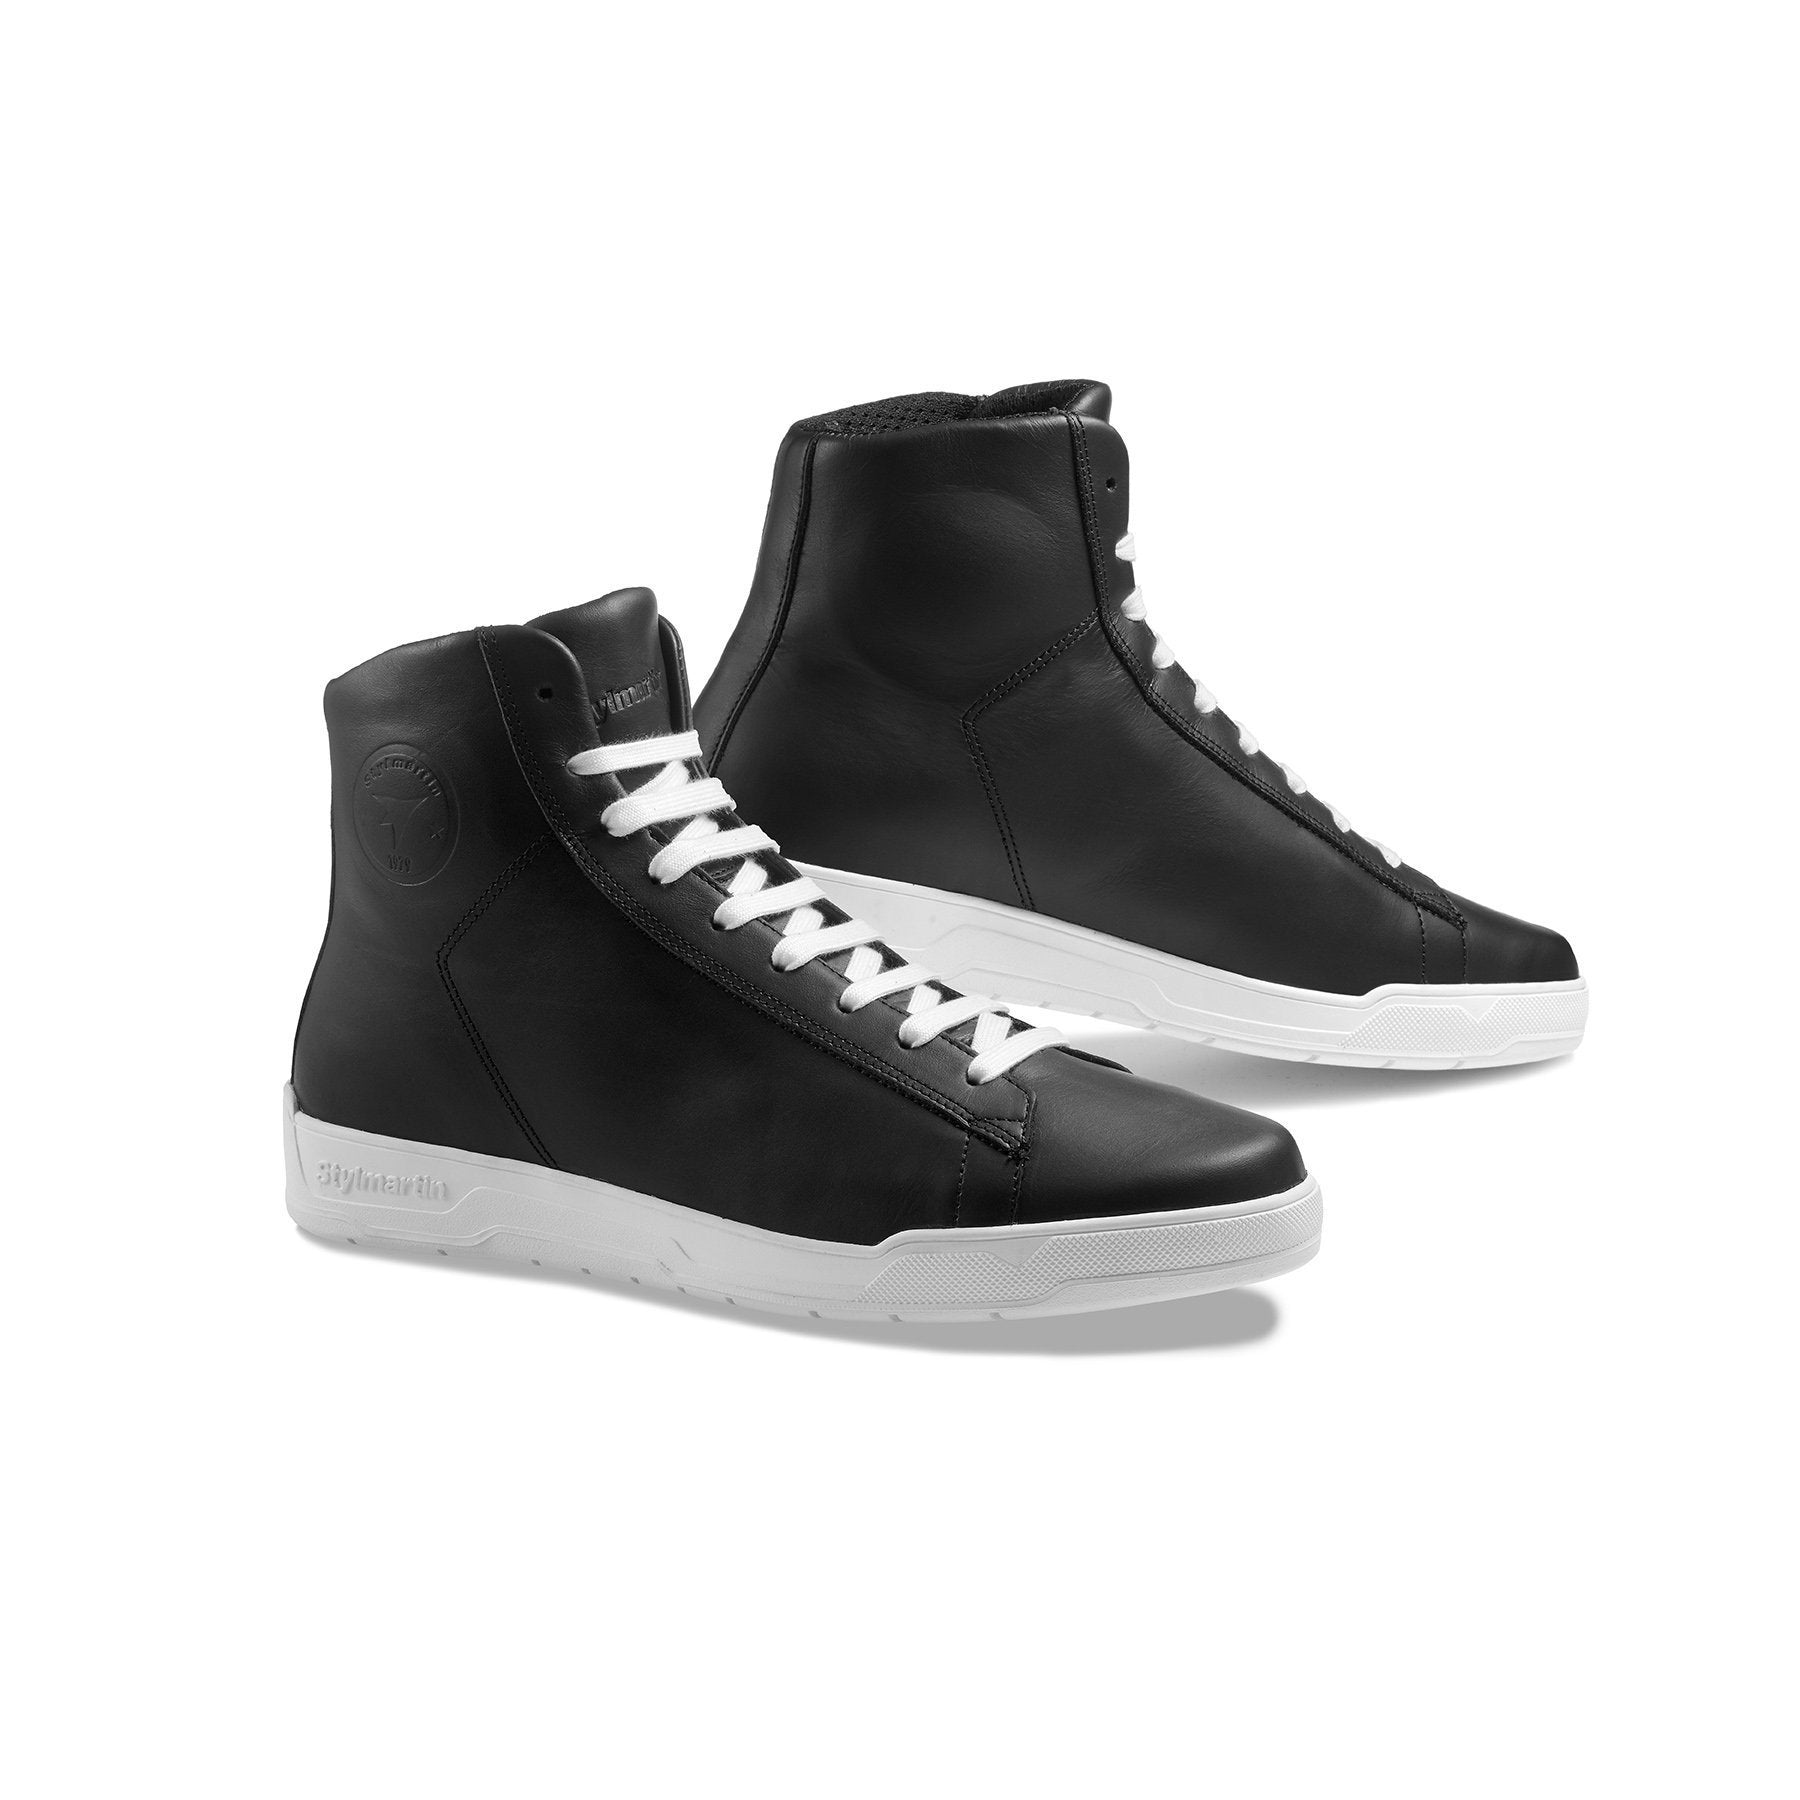 Stylmartin - Stylmartin Core WP Sneaker in Black and White - Boots - Salt Flats Clothing